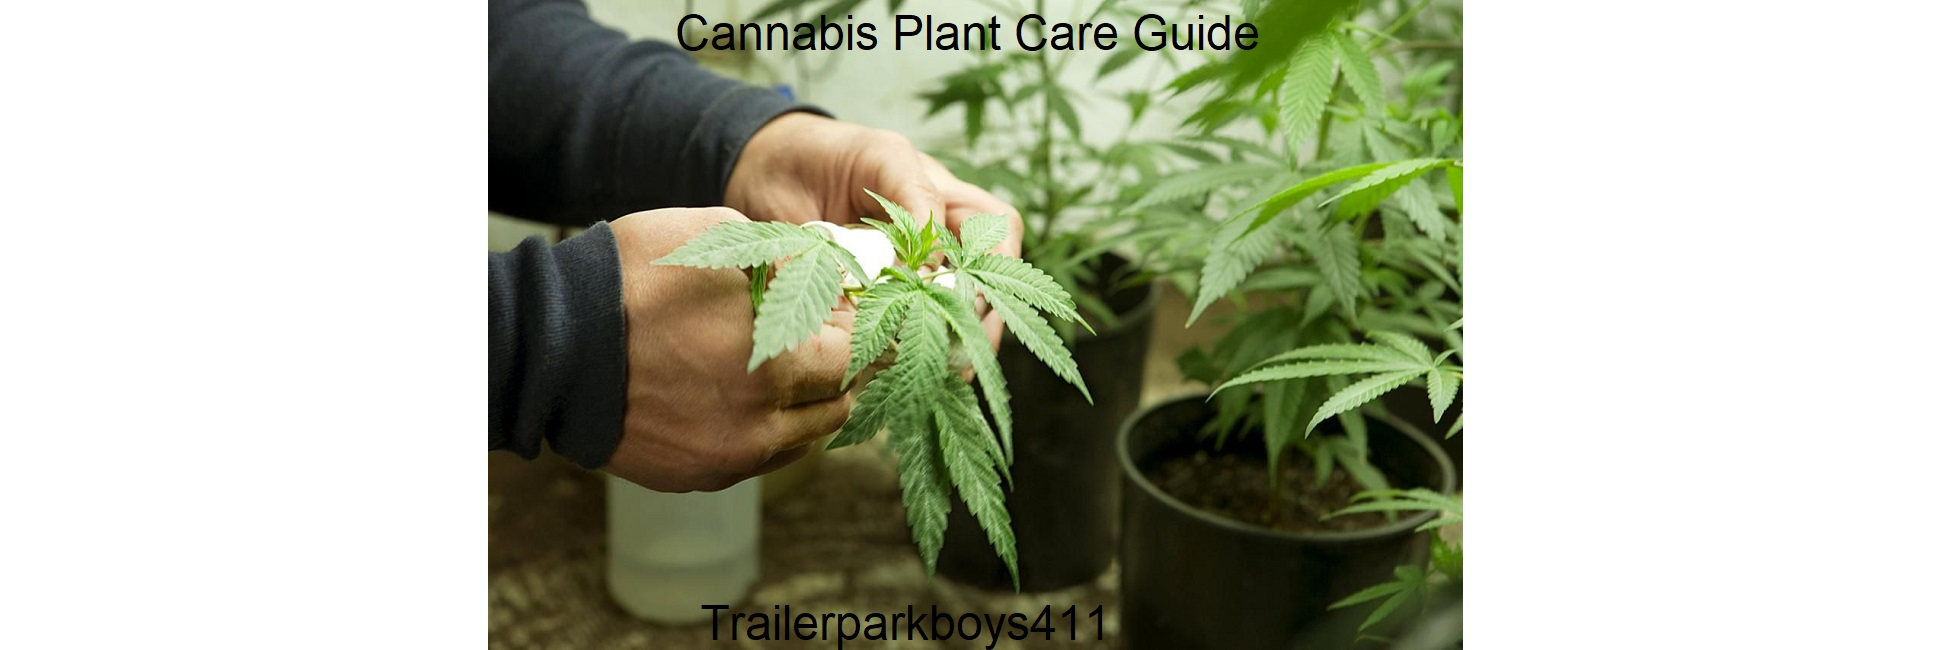 Cannabis Plant Care Guide